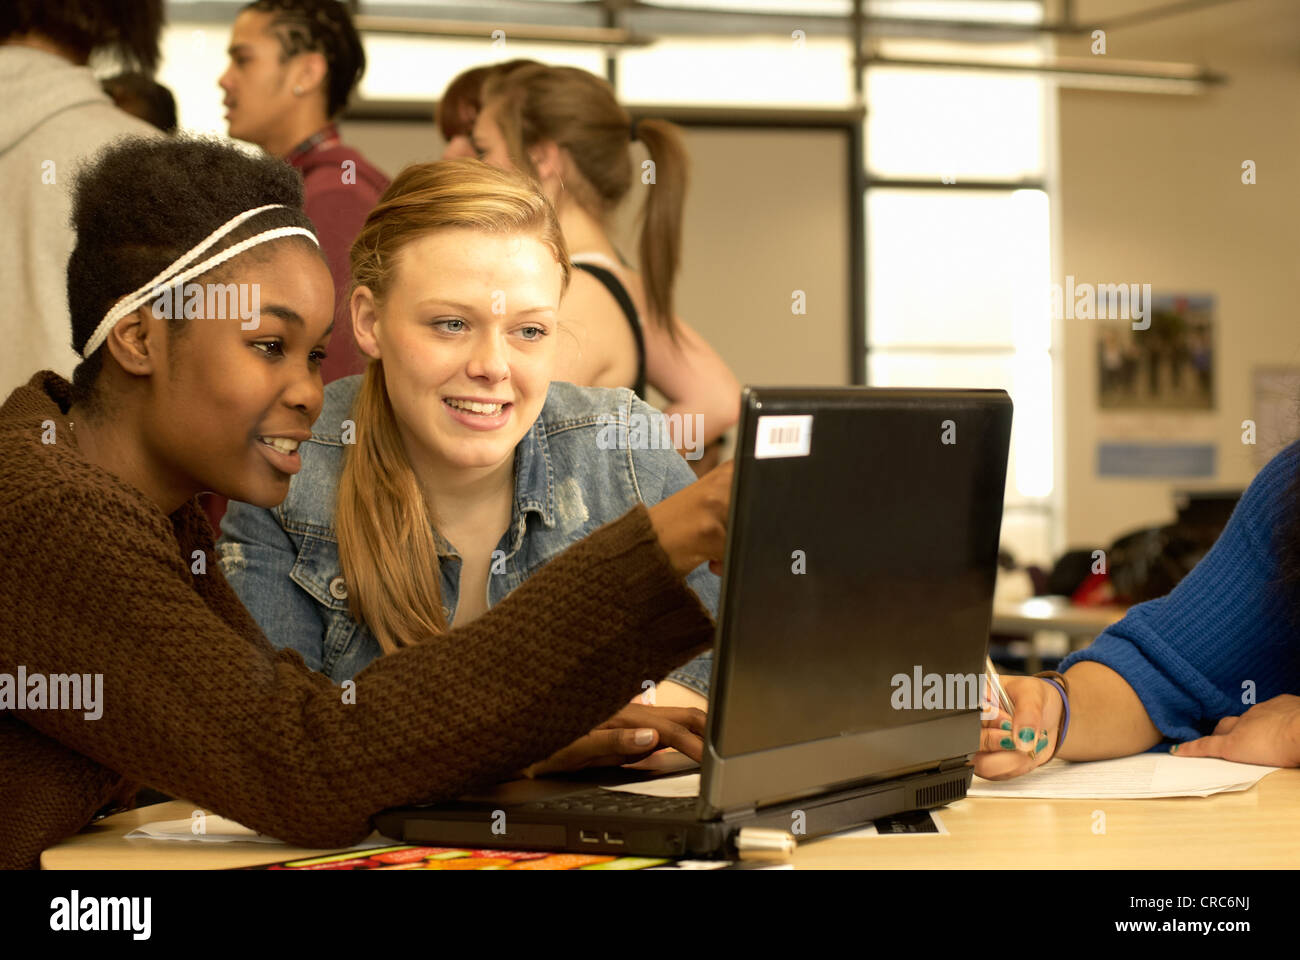 Students working together in library - Stock Image